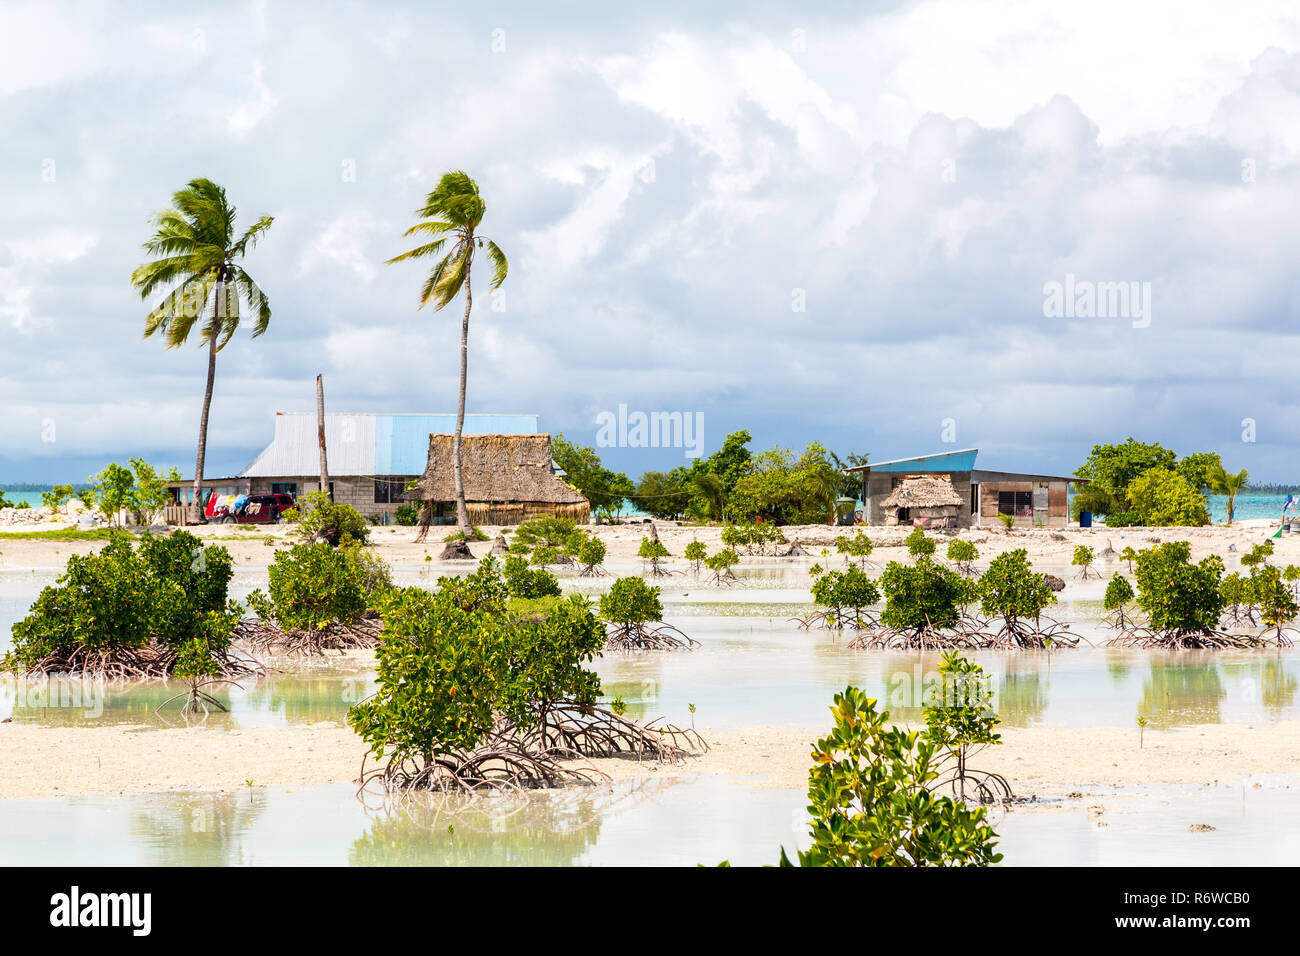 Village on South Tarawa atoll, Kiribati, Micronesia, Oceania. Thatched roof houses. Rural life on a sandy beach of remote paradise island under palms. - Stock Image